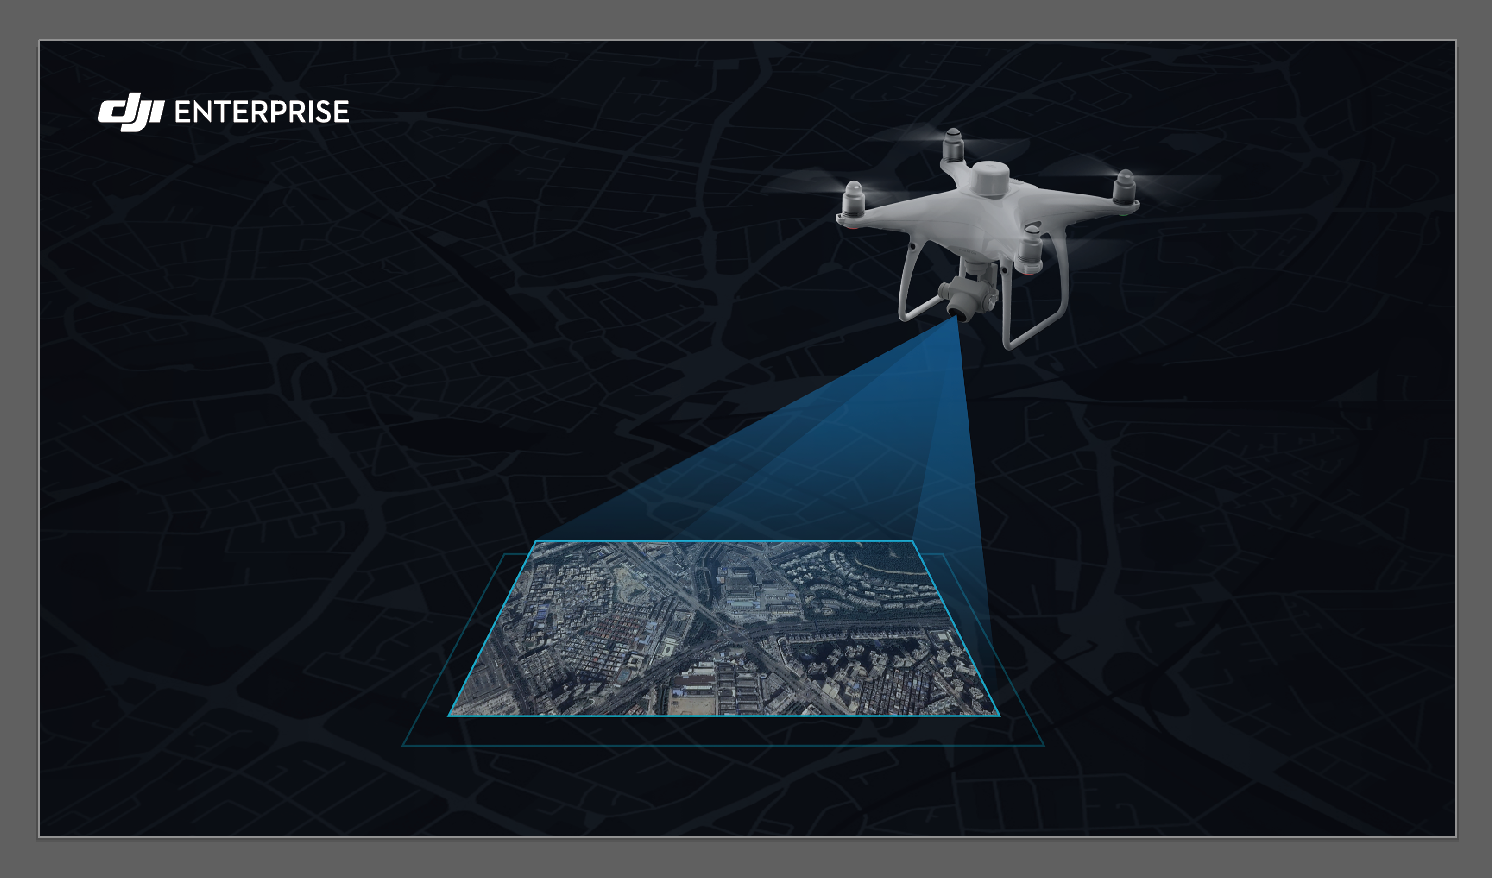 DJI has rethought its drone technology from the ground-up, revolutionizing its systems to achieve a new standard for drone accuracy – offering Phantom 4 RTK customers centimeter-accurate data while requiring fewer ground control points.